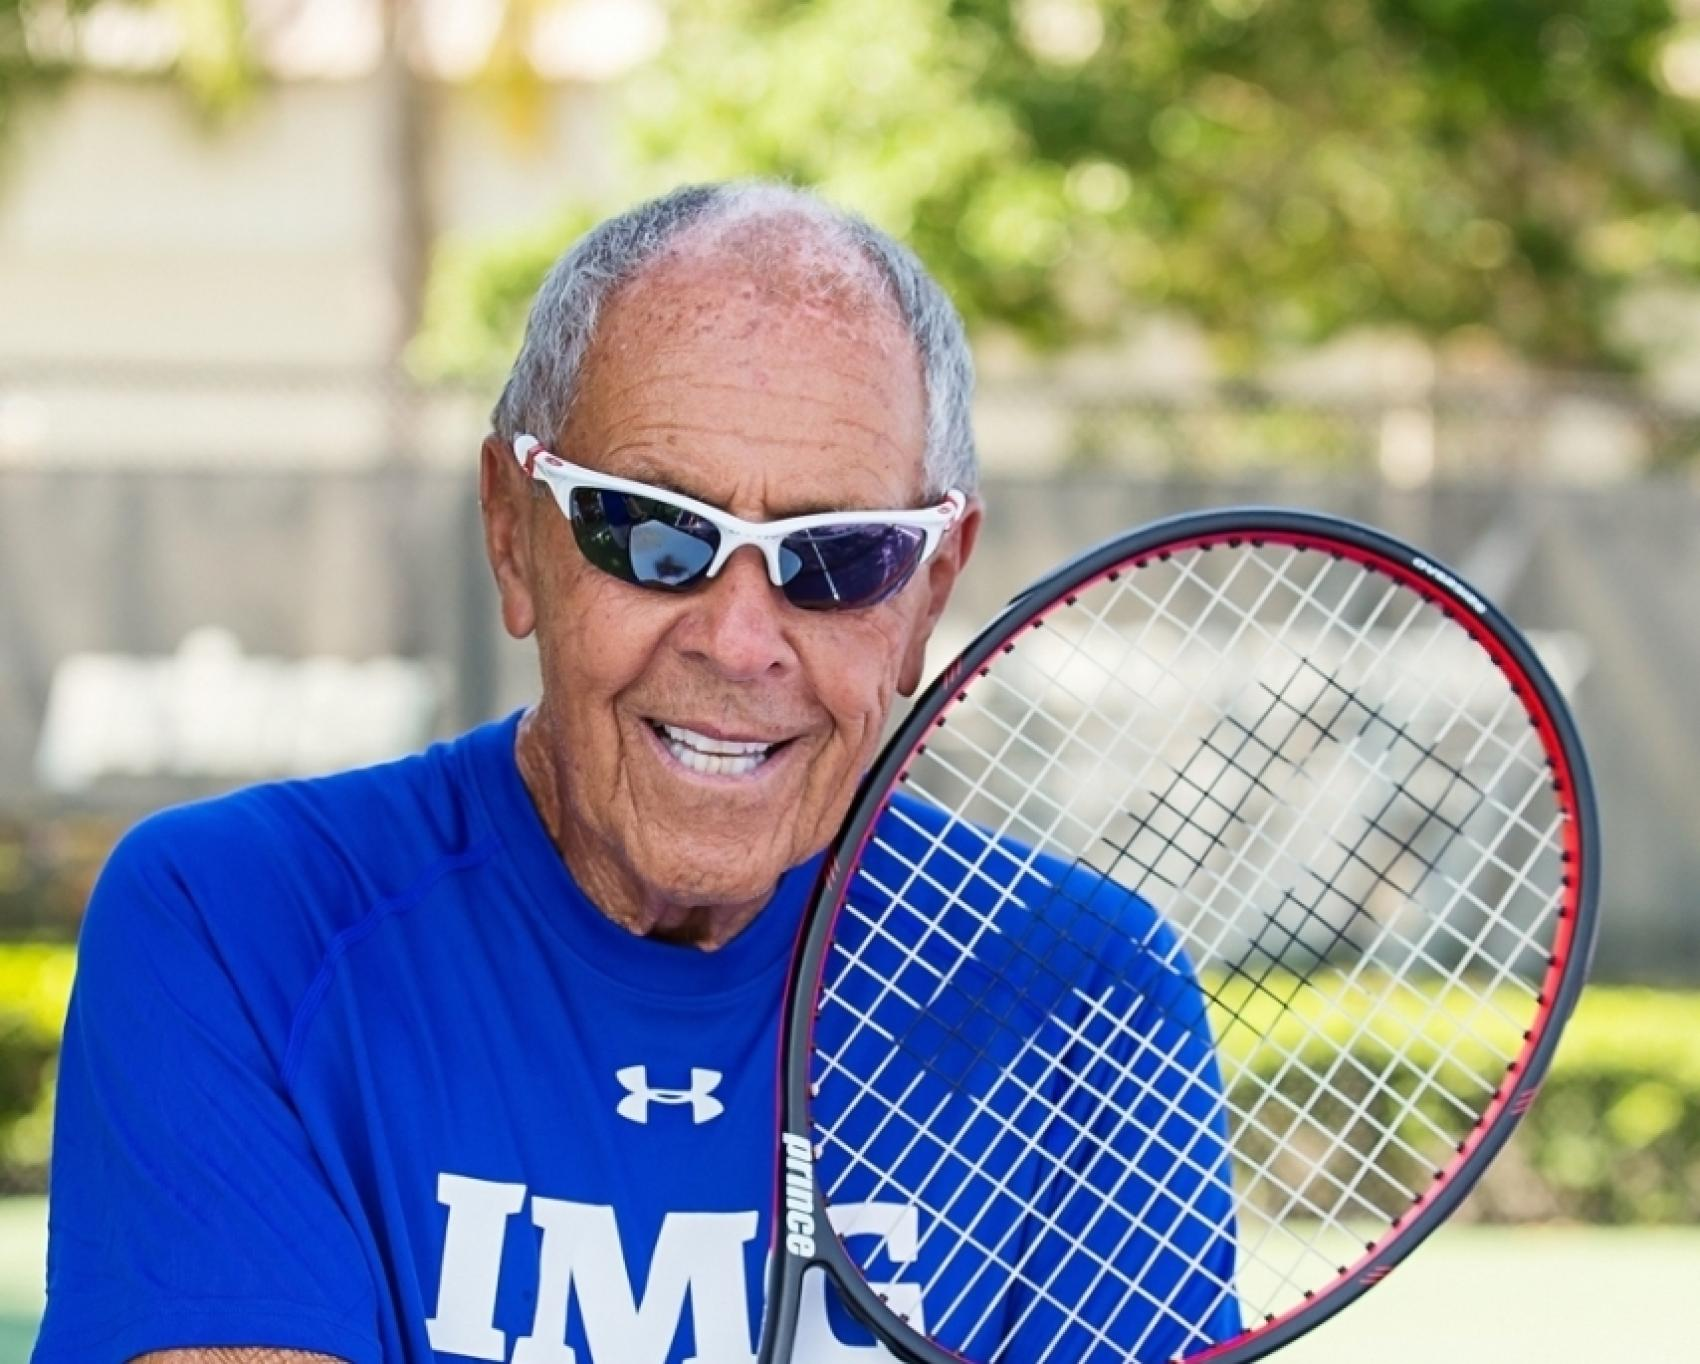 united states casual shoes wholesale outlet Nick Bollettieri | IMG Academy